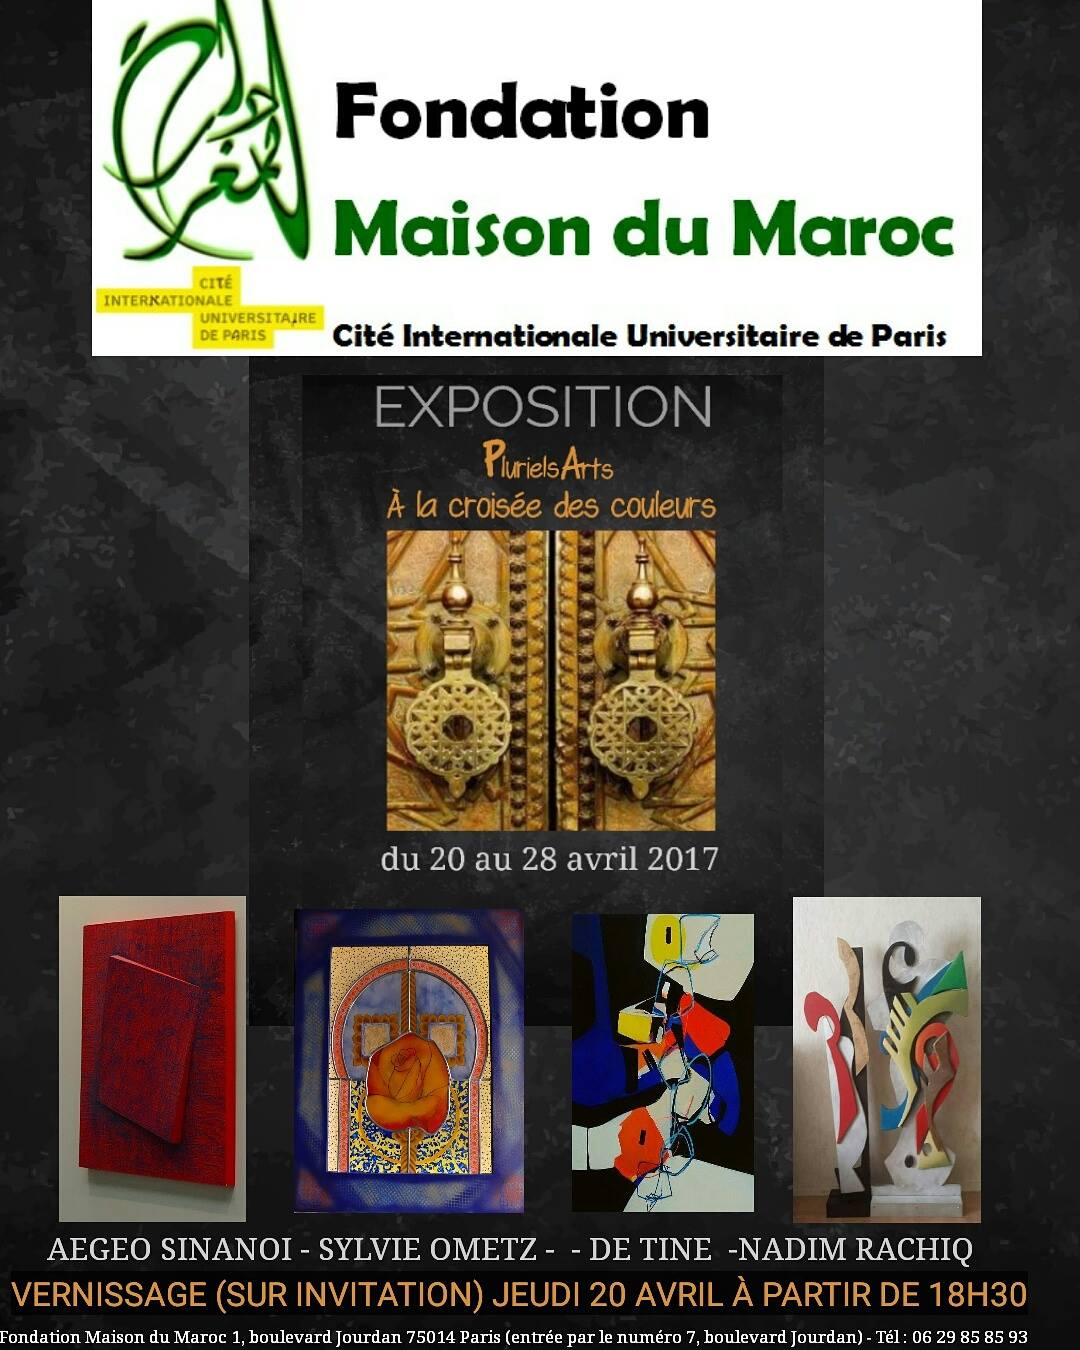 plurielsarts la fondation maison du maroc pluton magazine. Black Bedroom Furniture Sets. Home Design Ideas